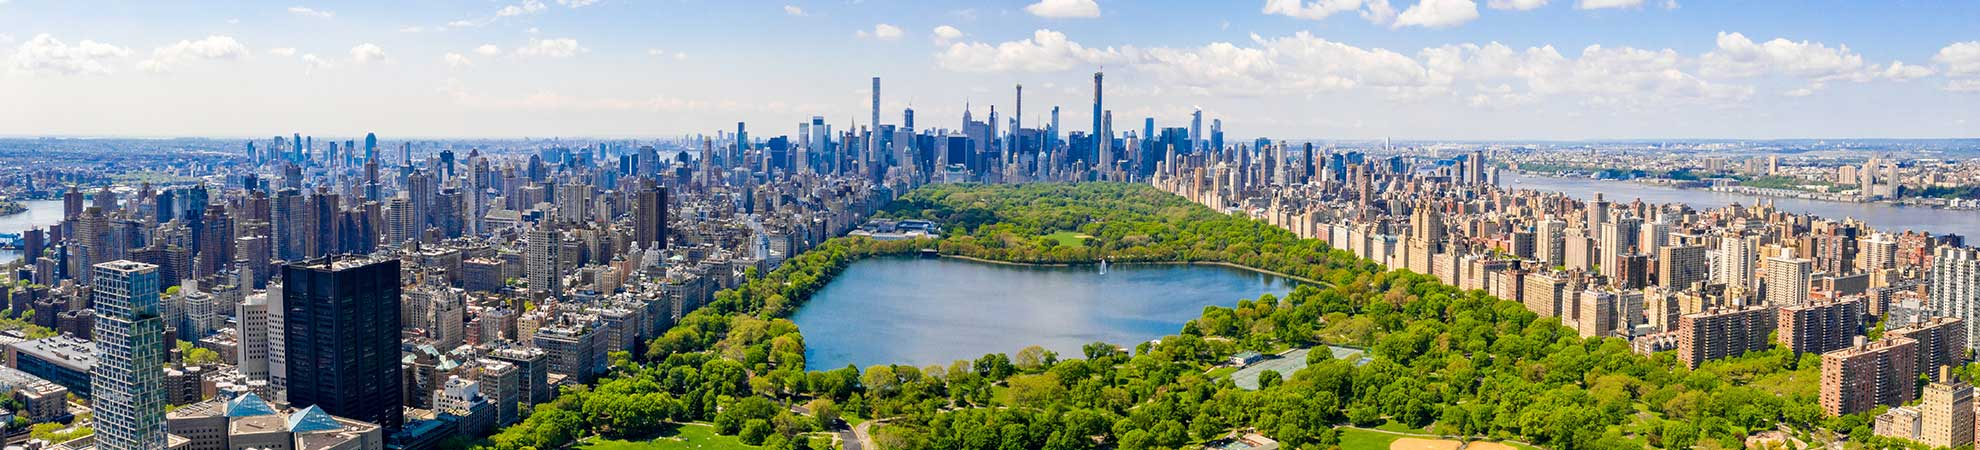 Voyage ouest americain avec extension New York